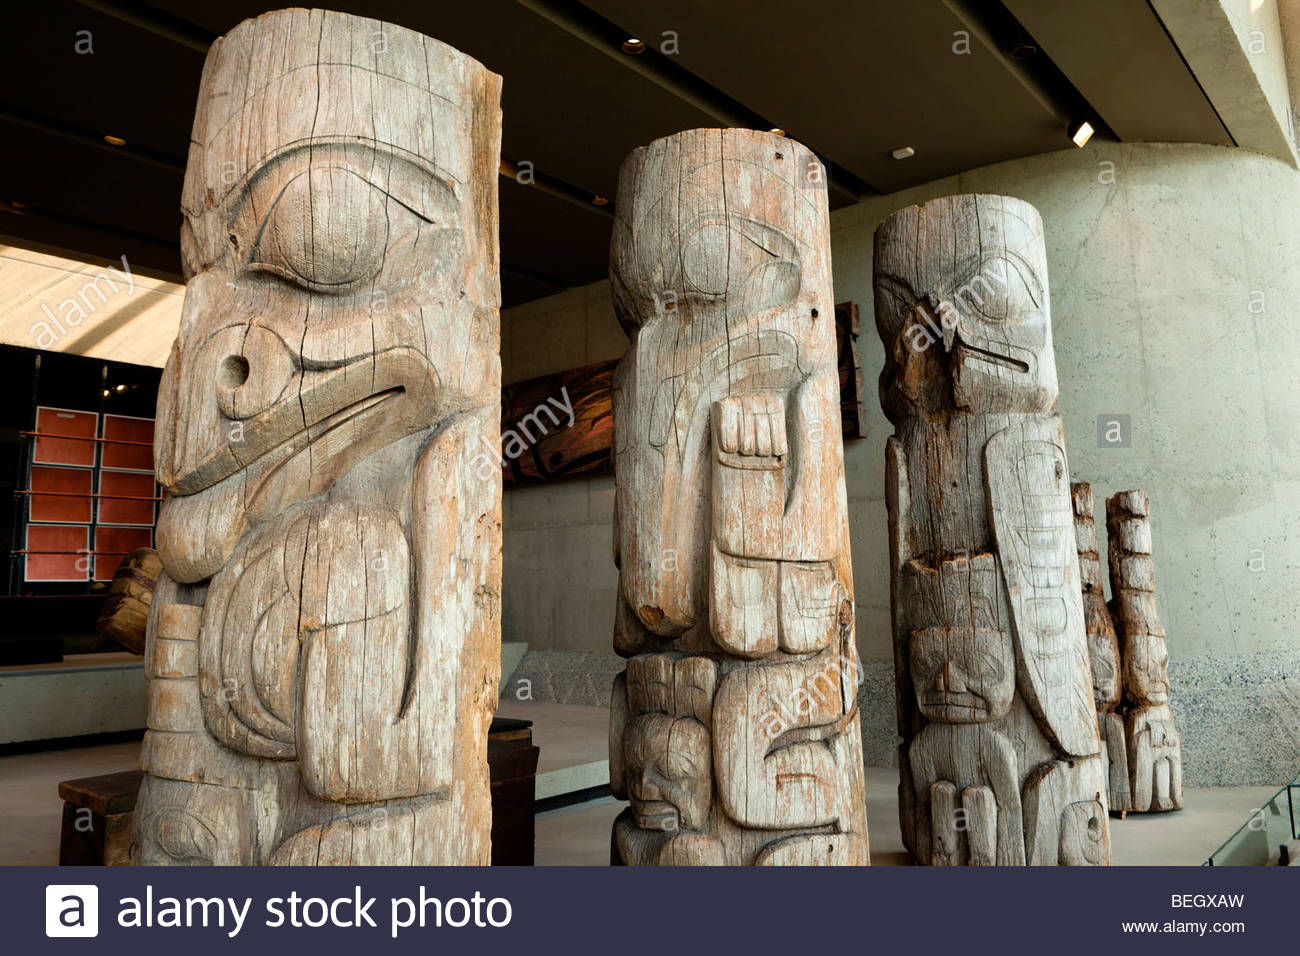 Haida Totem Poles at the Museum of Anthropology, Vancouver, B.C. - Stock Image